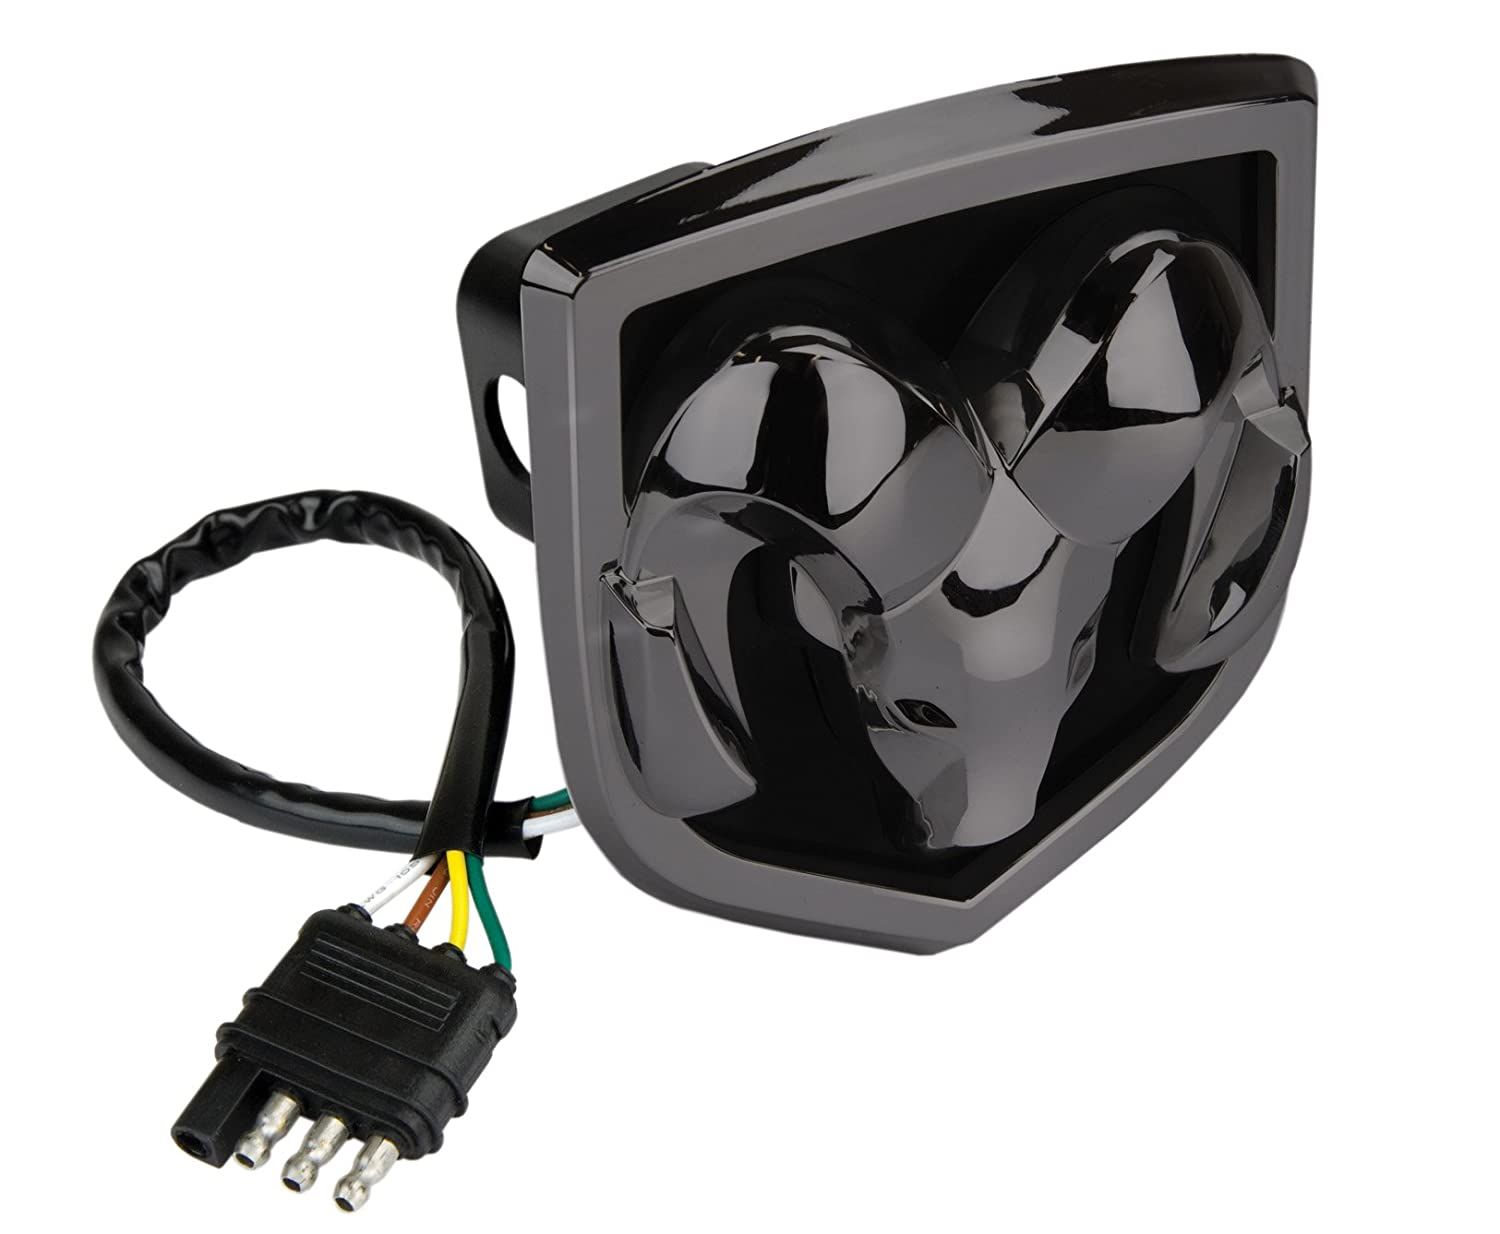 719jnu5ufvL._SL1500_ amazon com reese towpower 86531 black finish lighted hitch cover Wiring Harness Diagram at bayanpartner.co